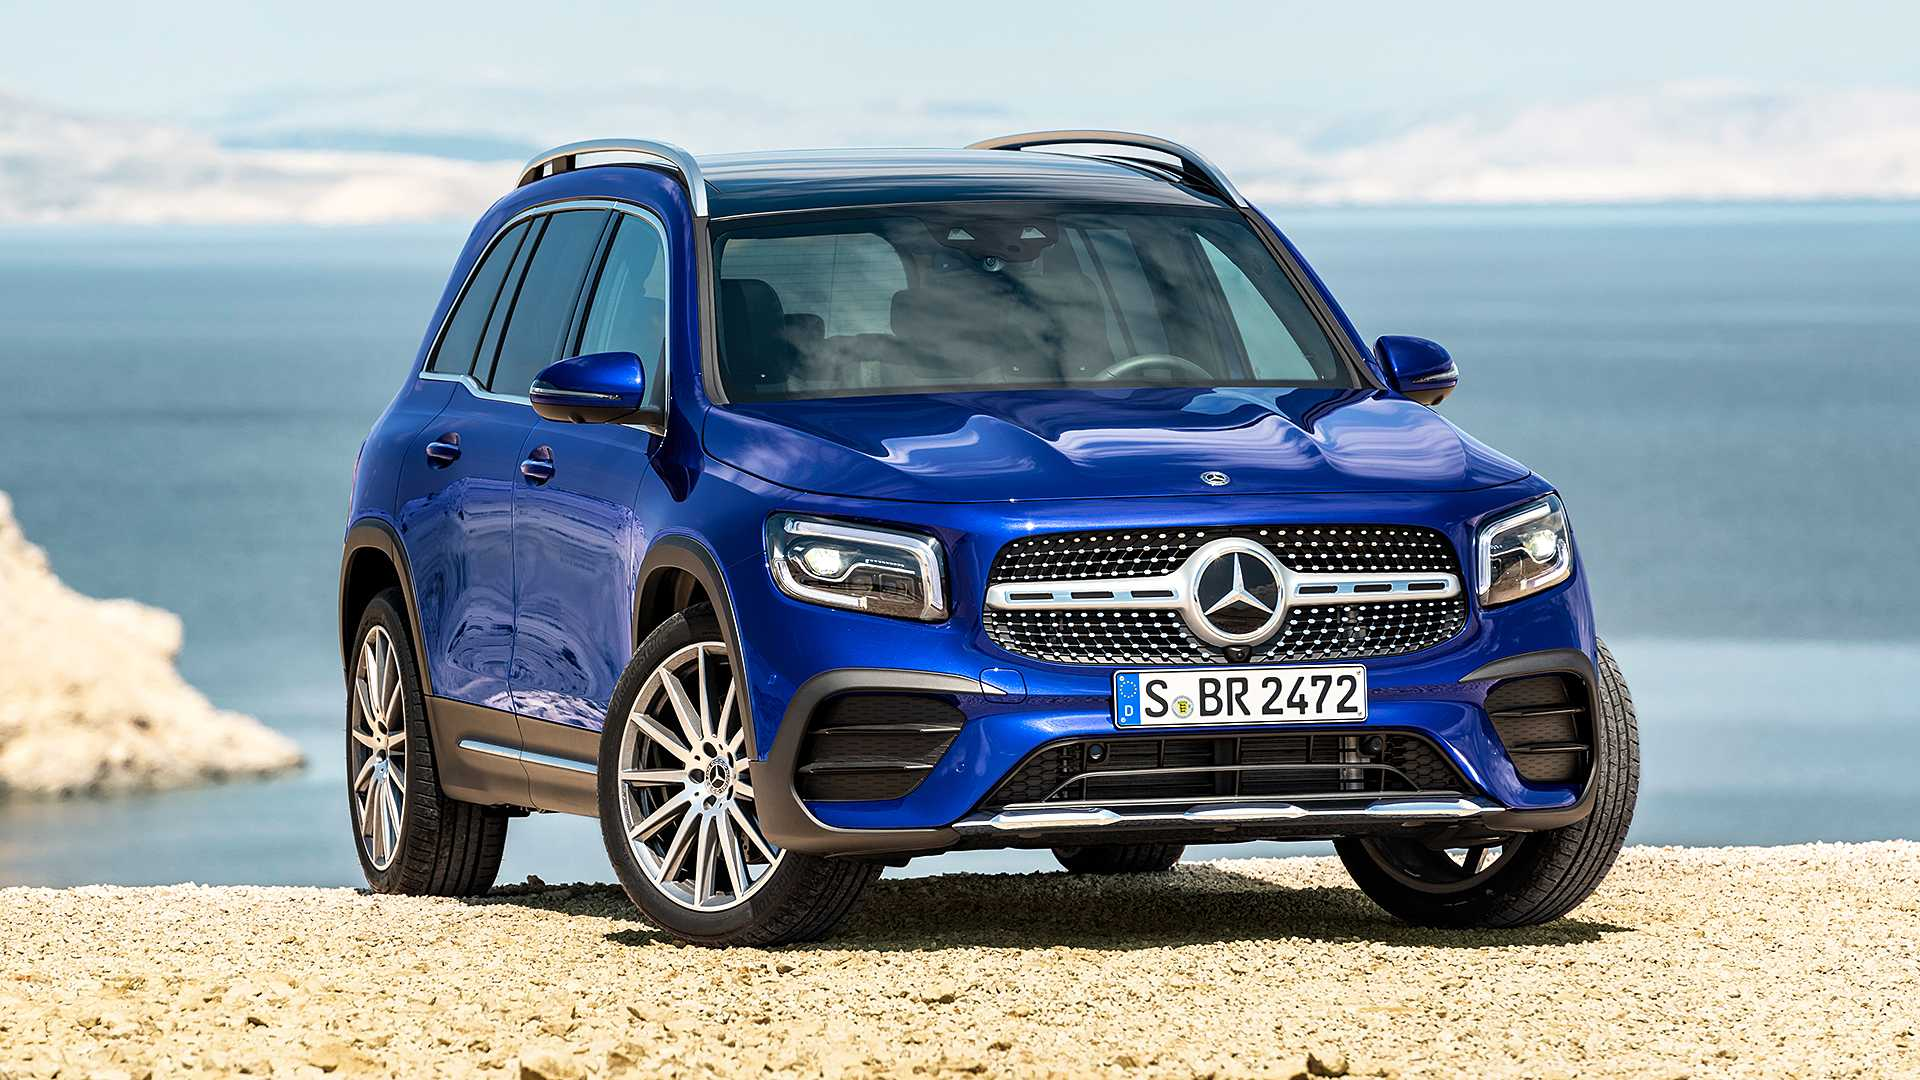 Mercedes-Benz has held an official reveal event dedicated to its new seven-seat SUV – the GLB – which should hit the showrooms before the end of the current year